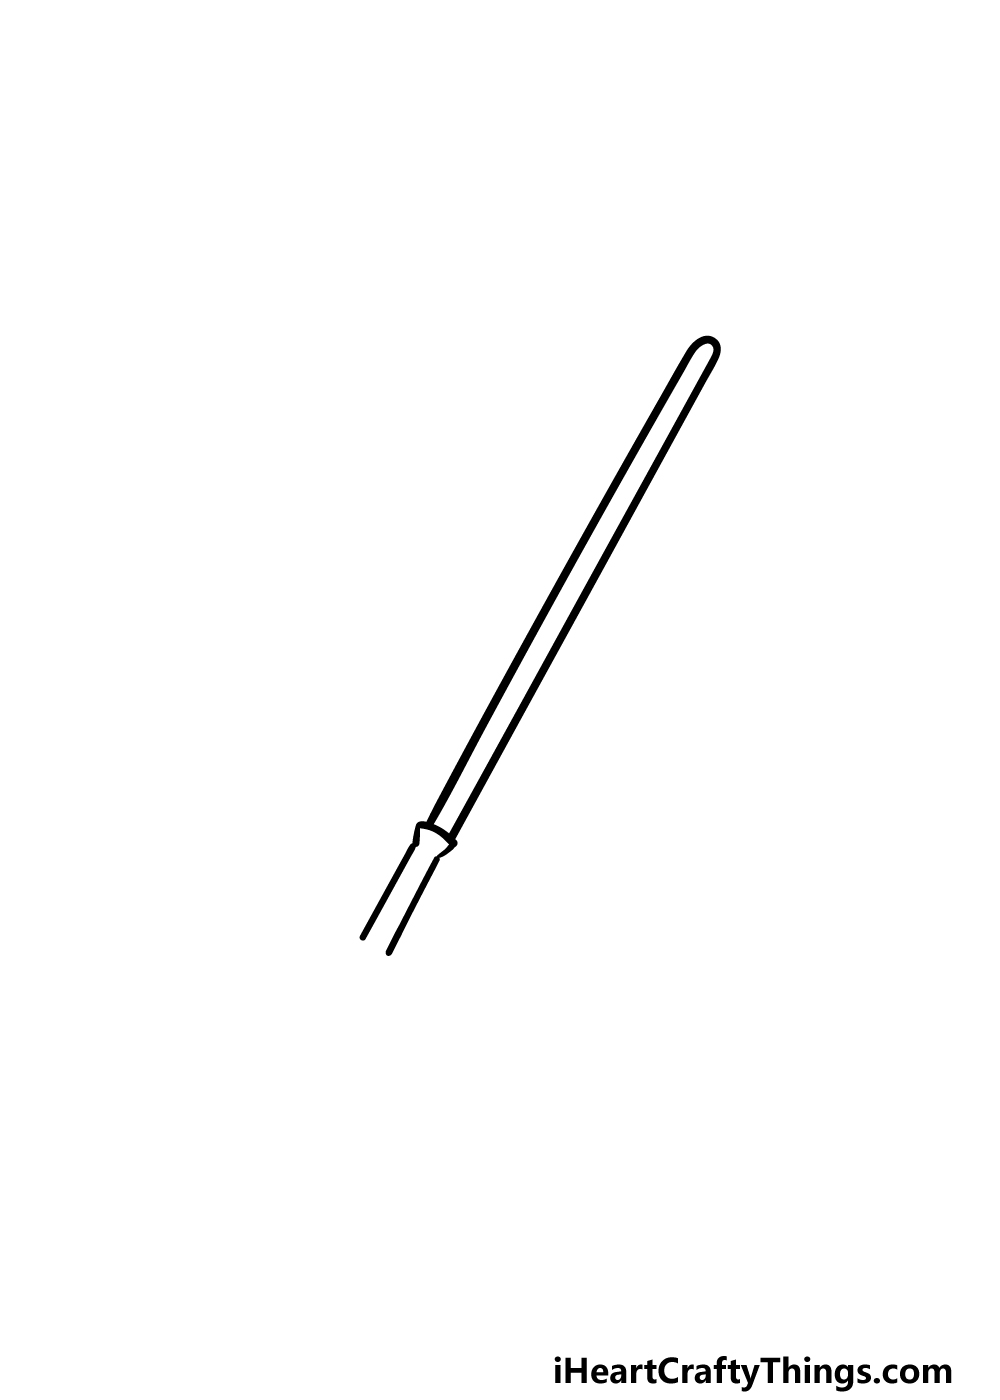 drawing a lightsaber step 2